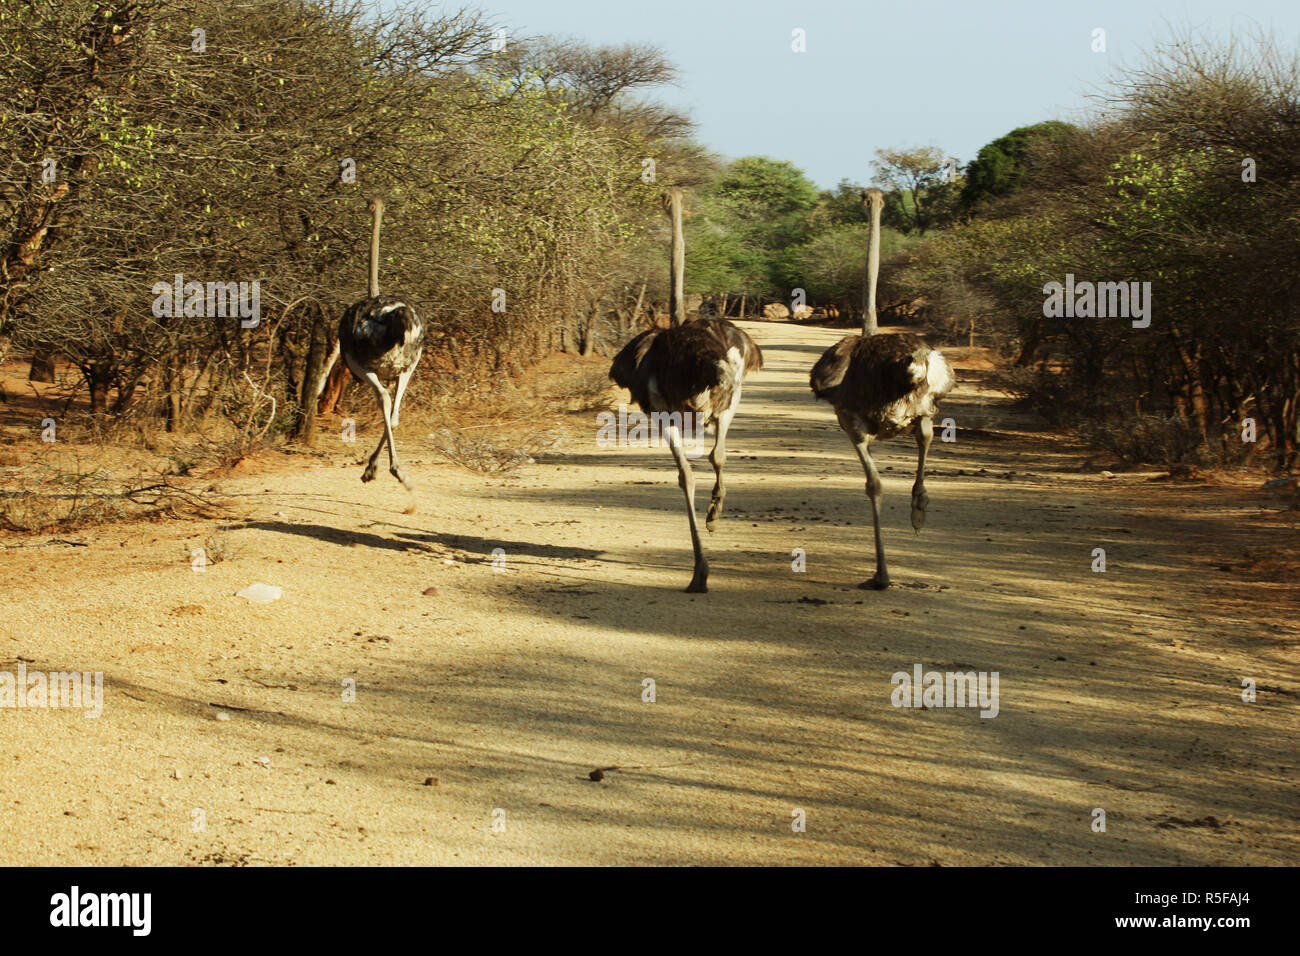 three ostriches running on the road in Africa - Stock Image